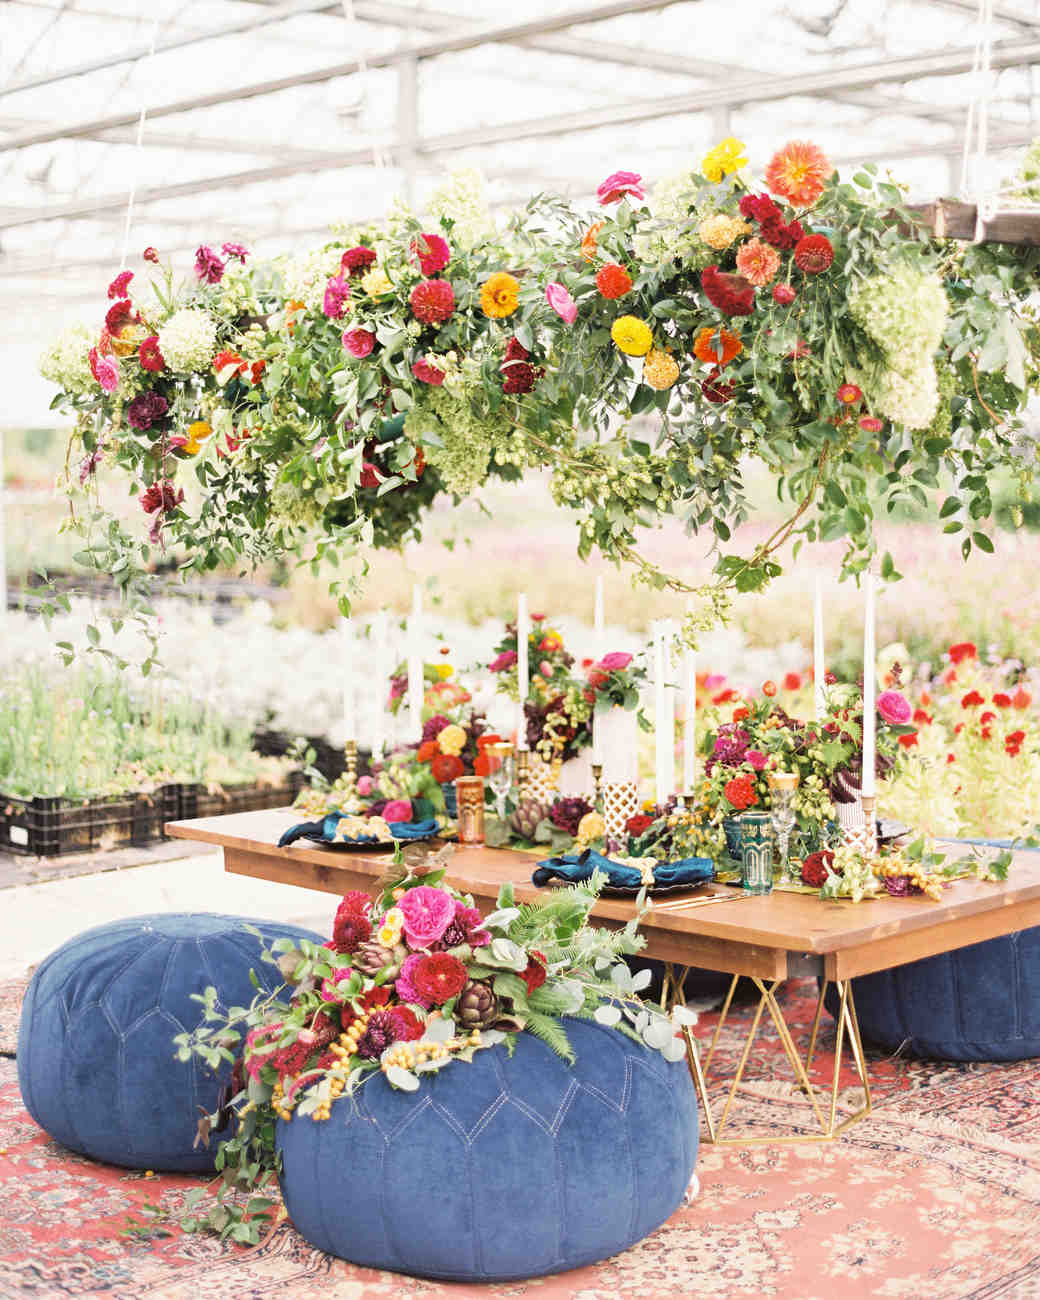 Outdoor Wedding Seating Ideas: 29 Ways To Turn Your Wedding Into A Secret Garden